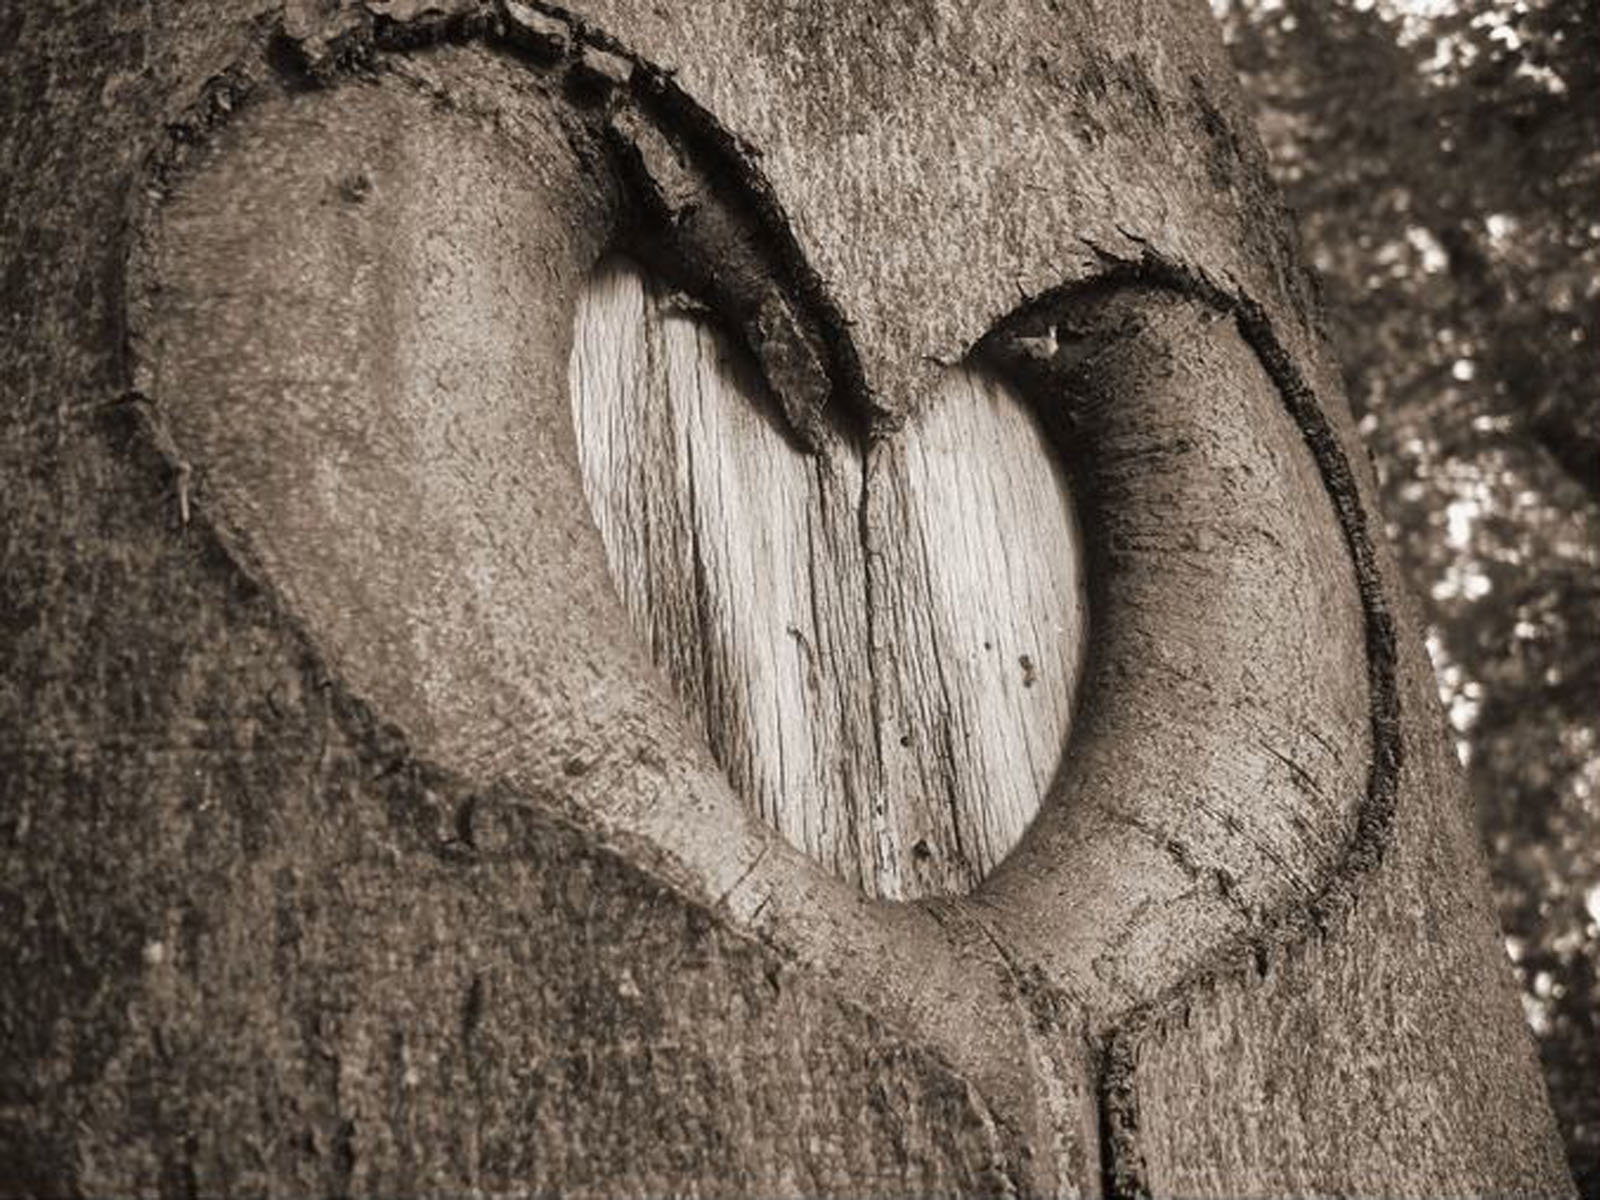 Wallpapers: Love Nature Wallpapers